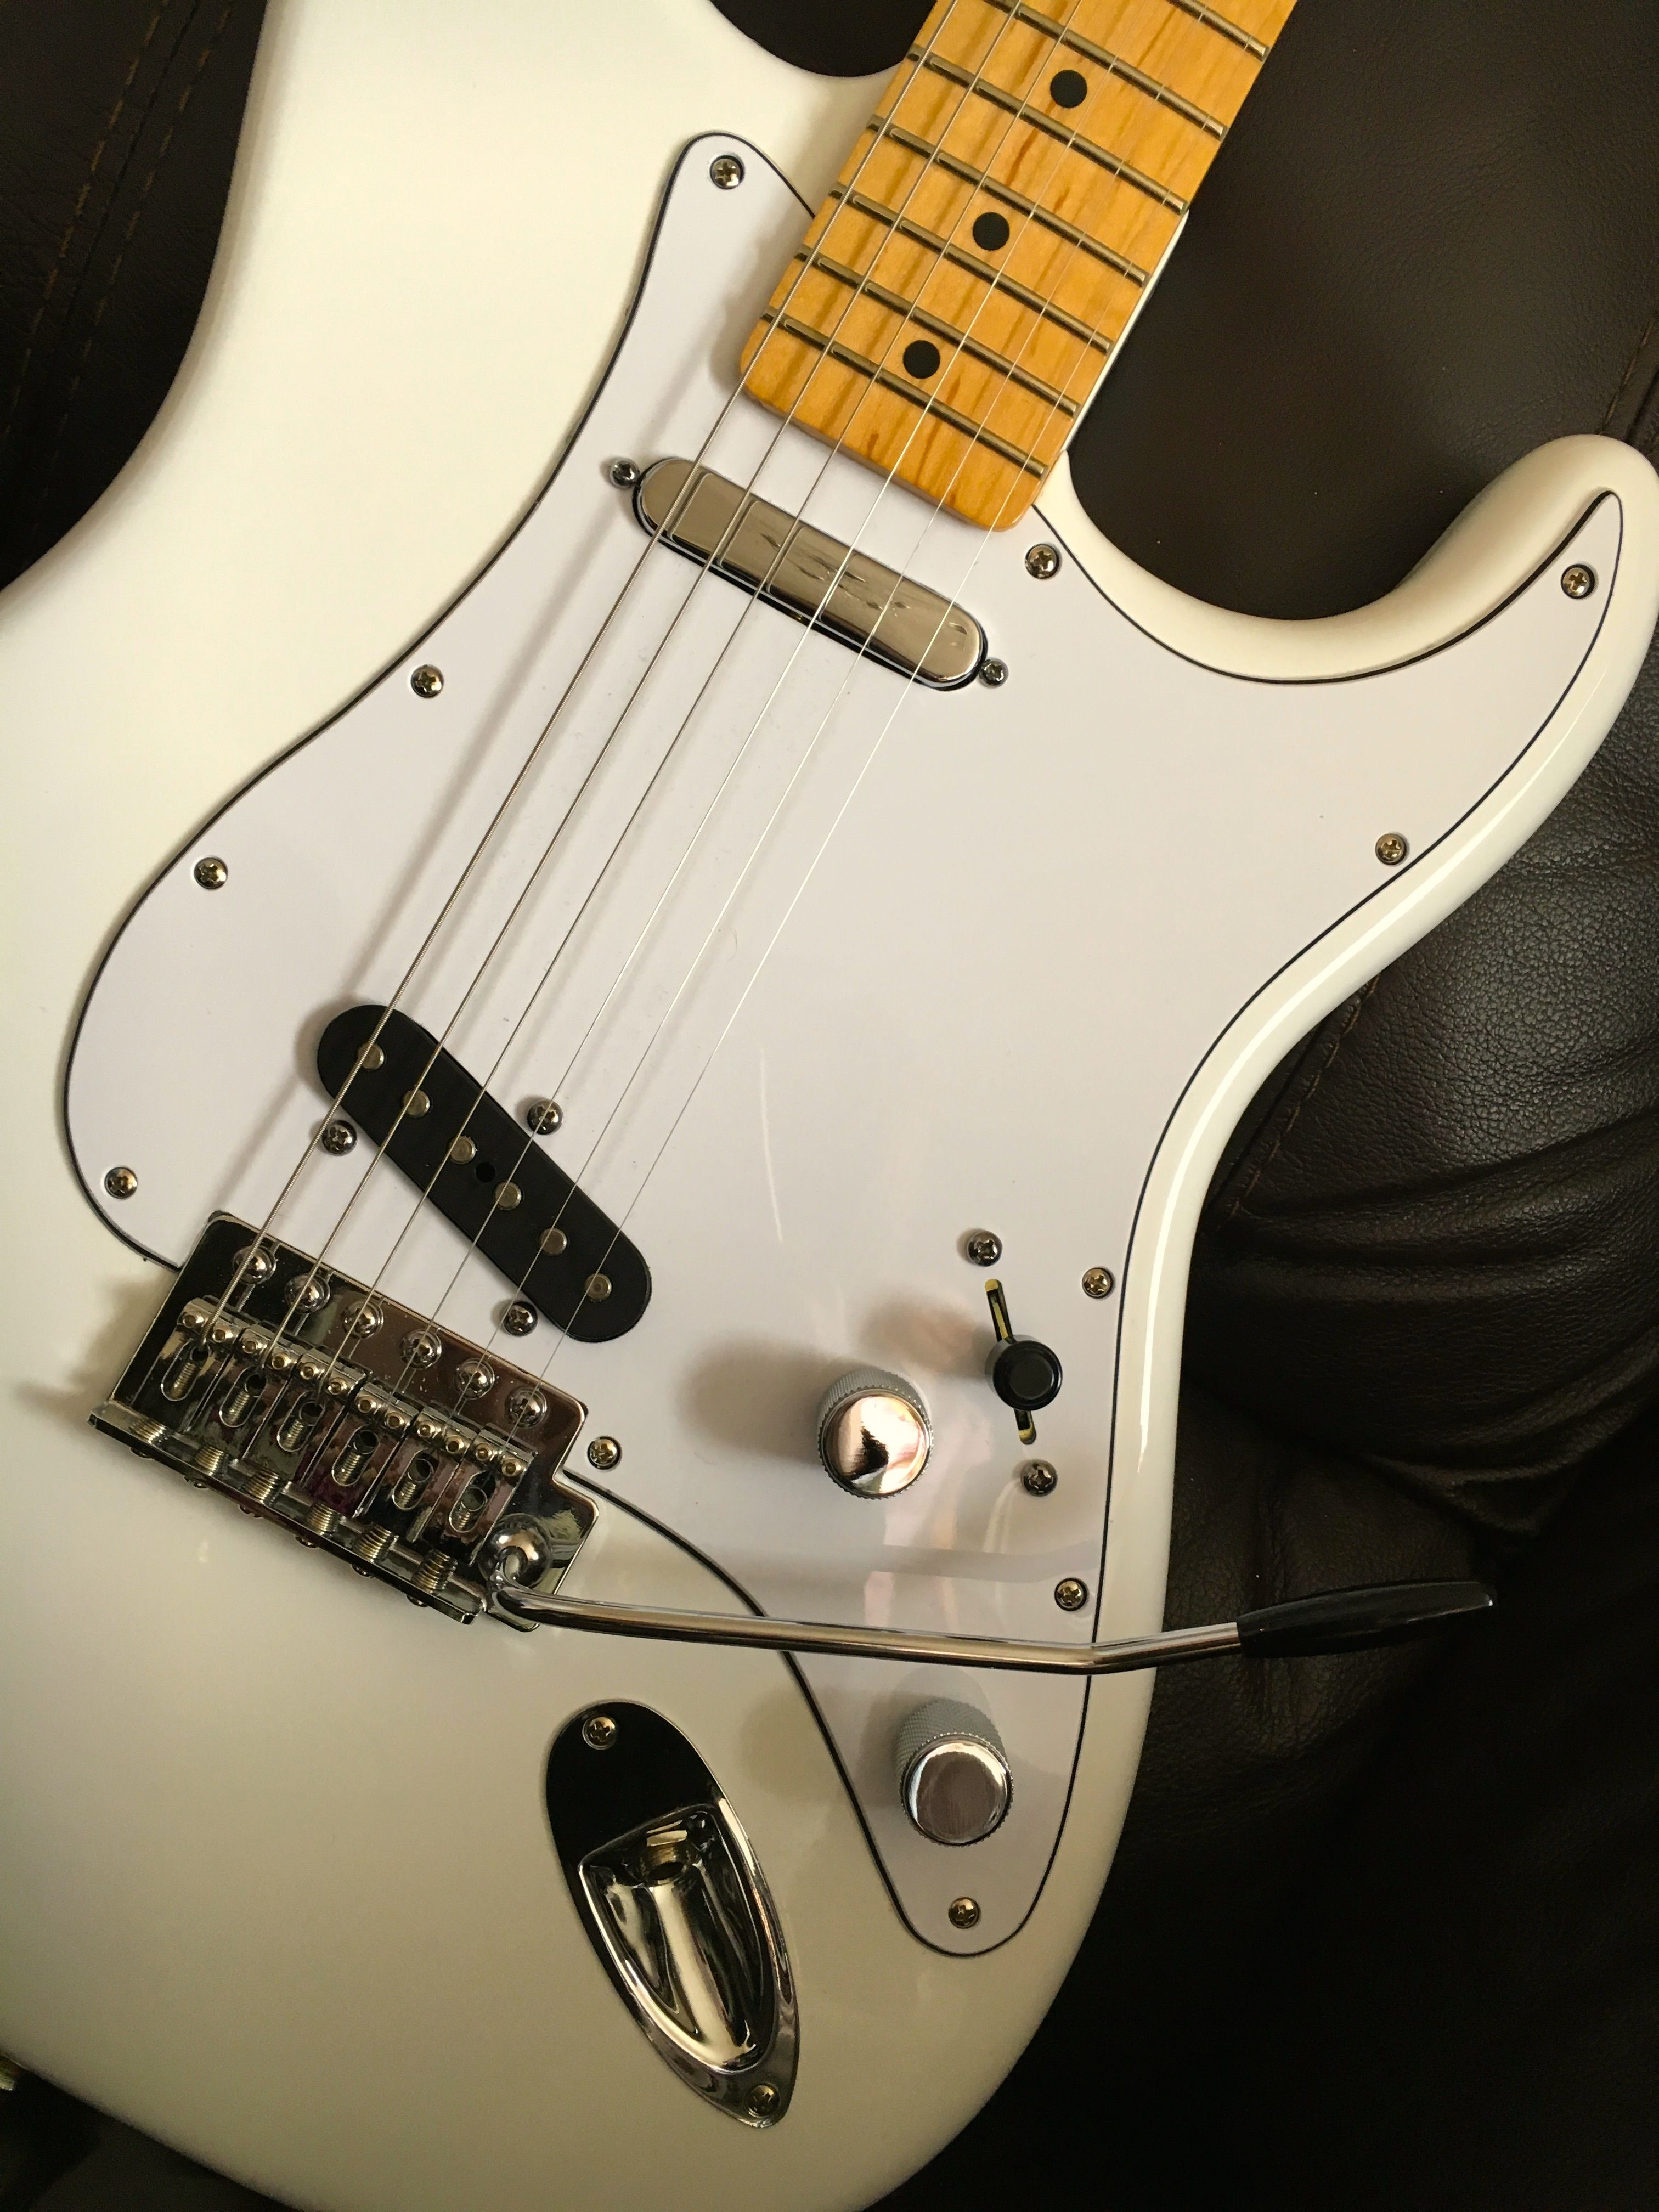 Strat/Tele hybrid! What do you reckon? I did wonder what this ...